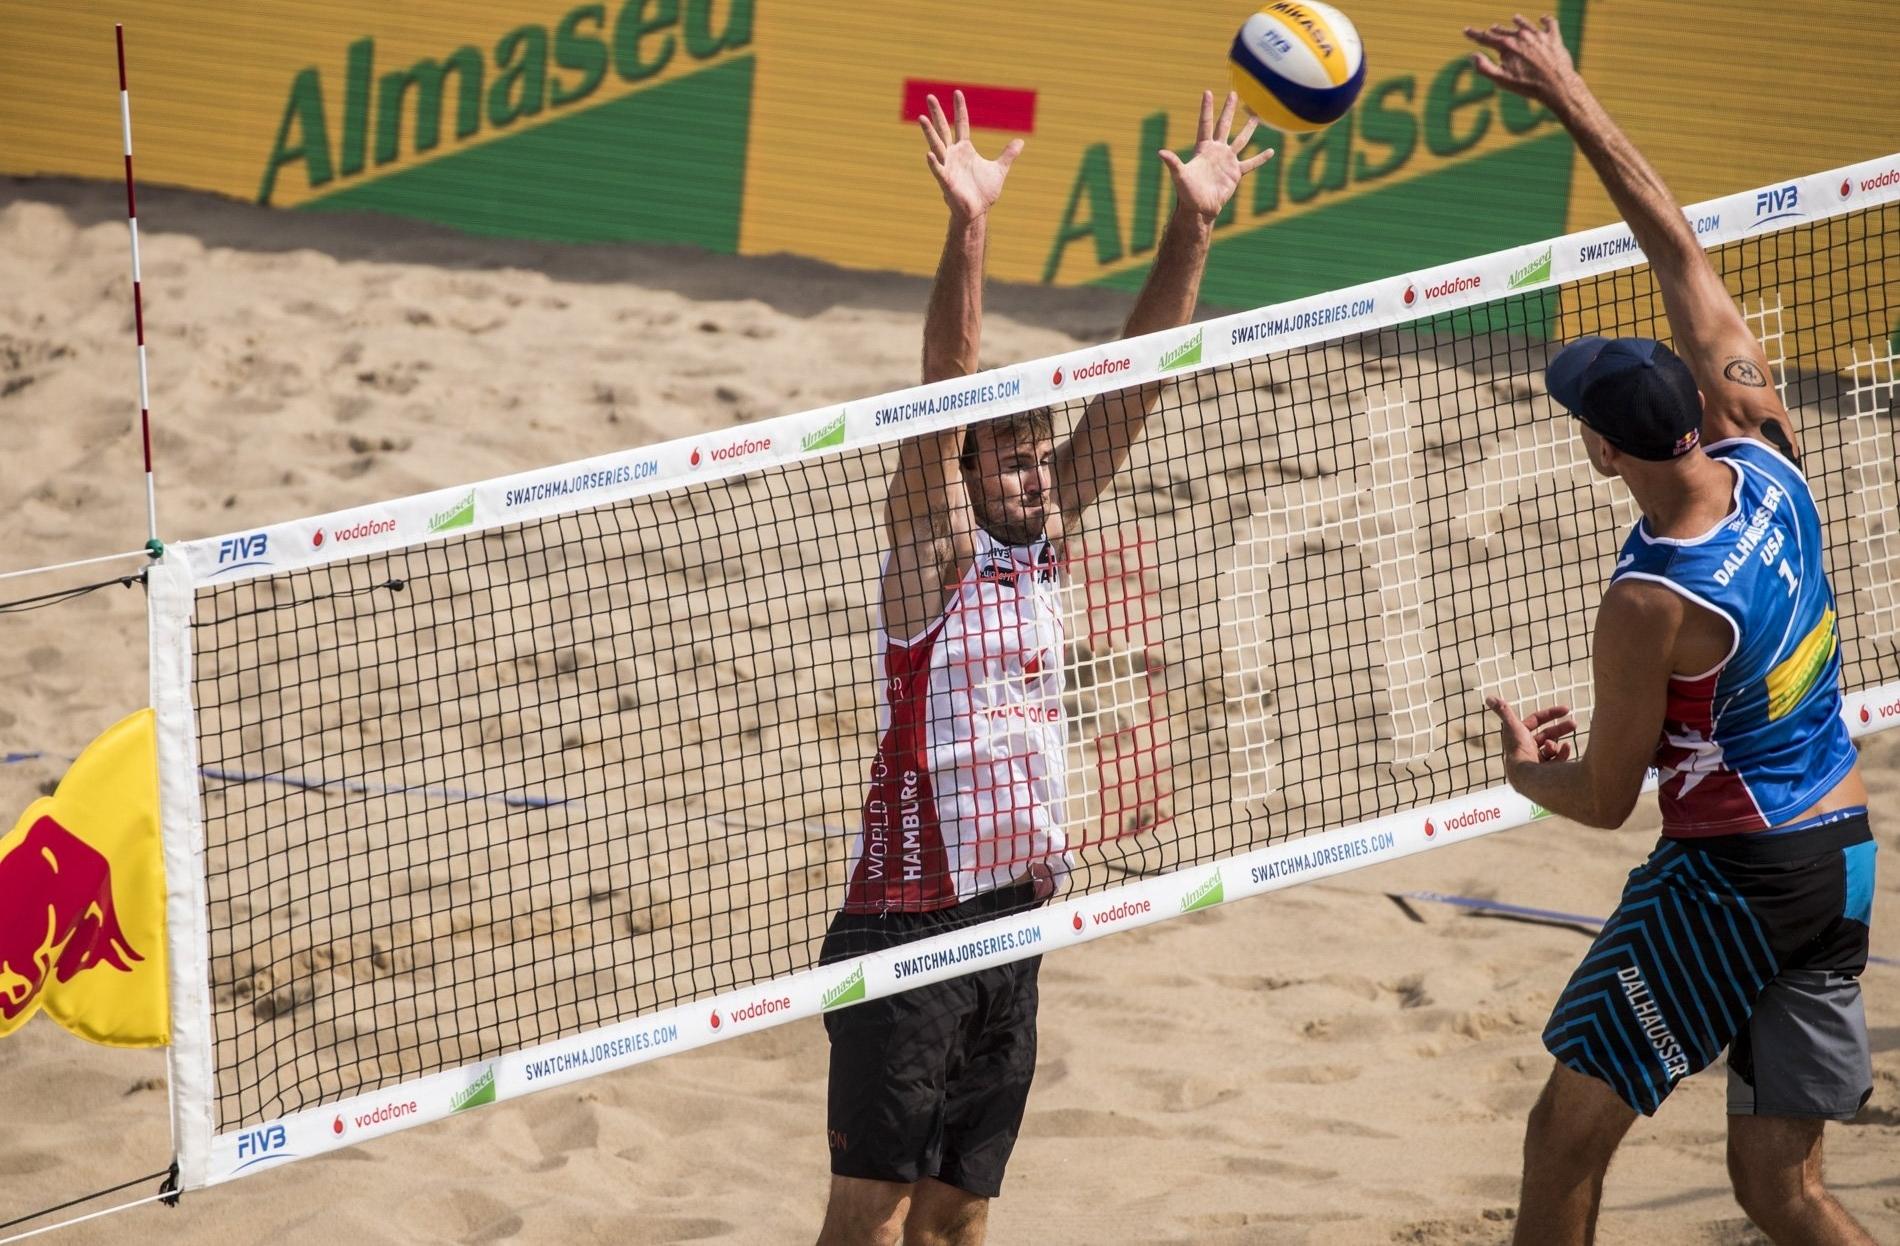 Ben blocks at the net during the quarterfinal at the Hamburg Finals against Lucena/Dalhausser